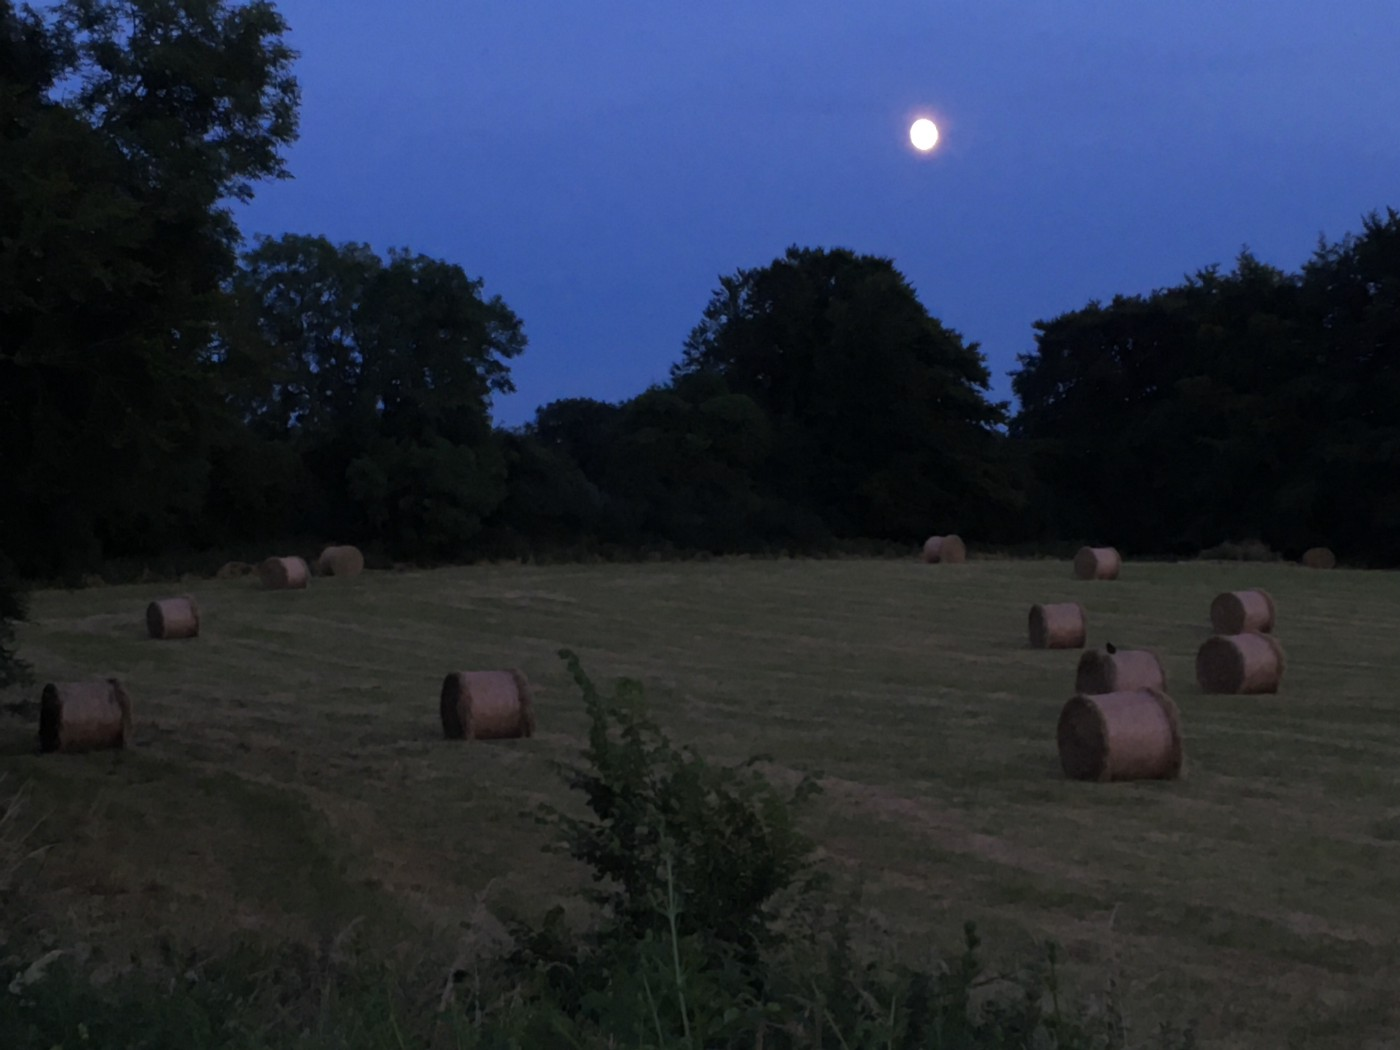 A countryside field littered with bales, the full moon above.